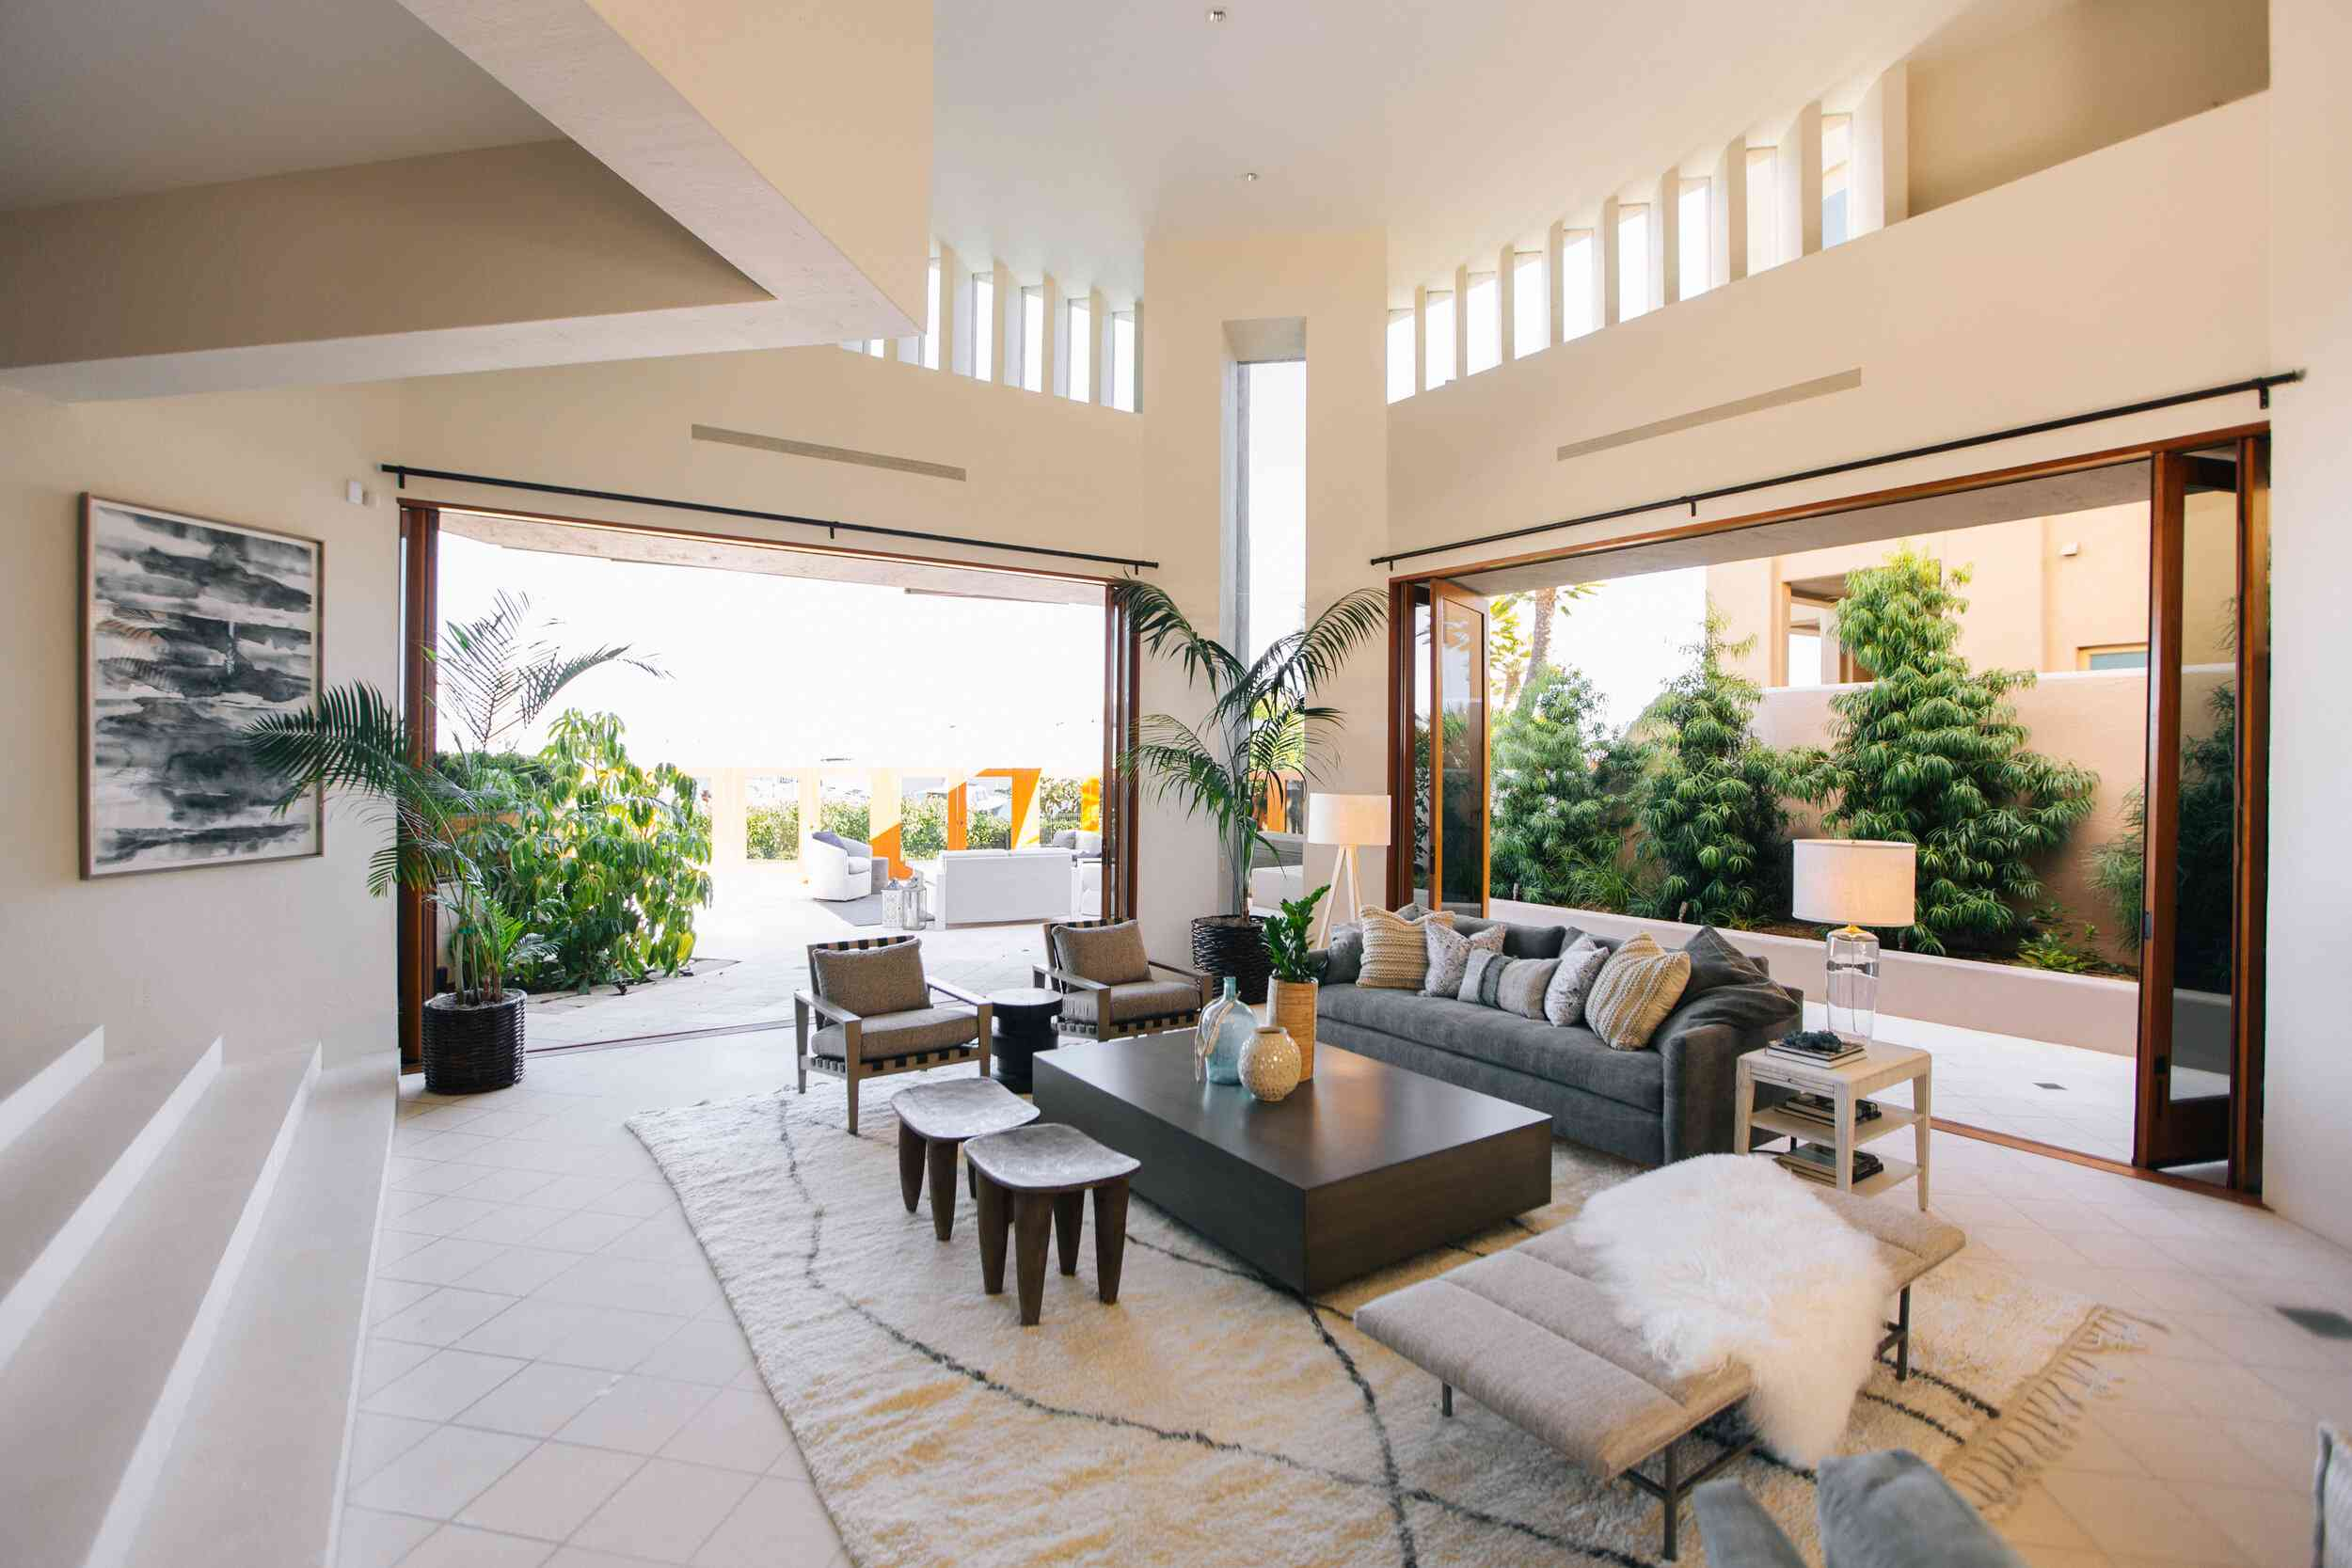 Grand tropical family room that extends to outside.